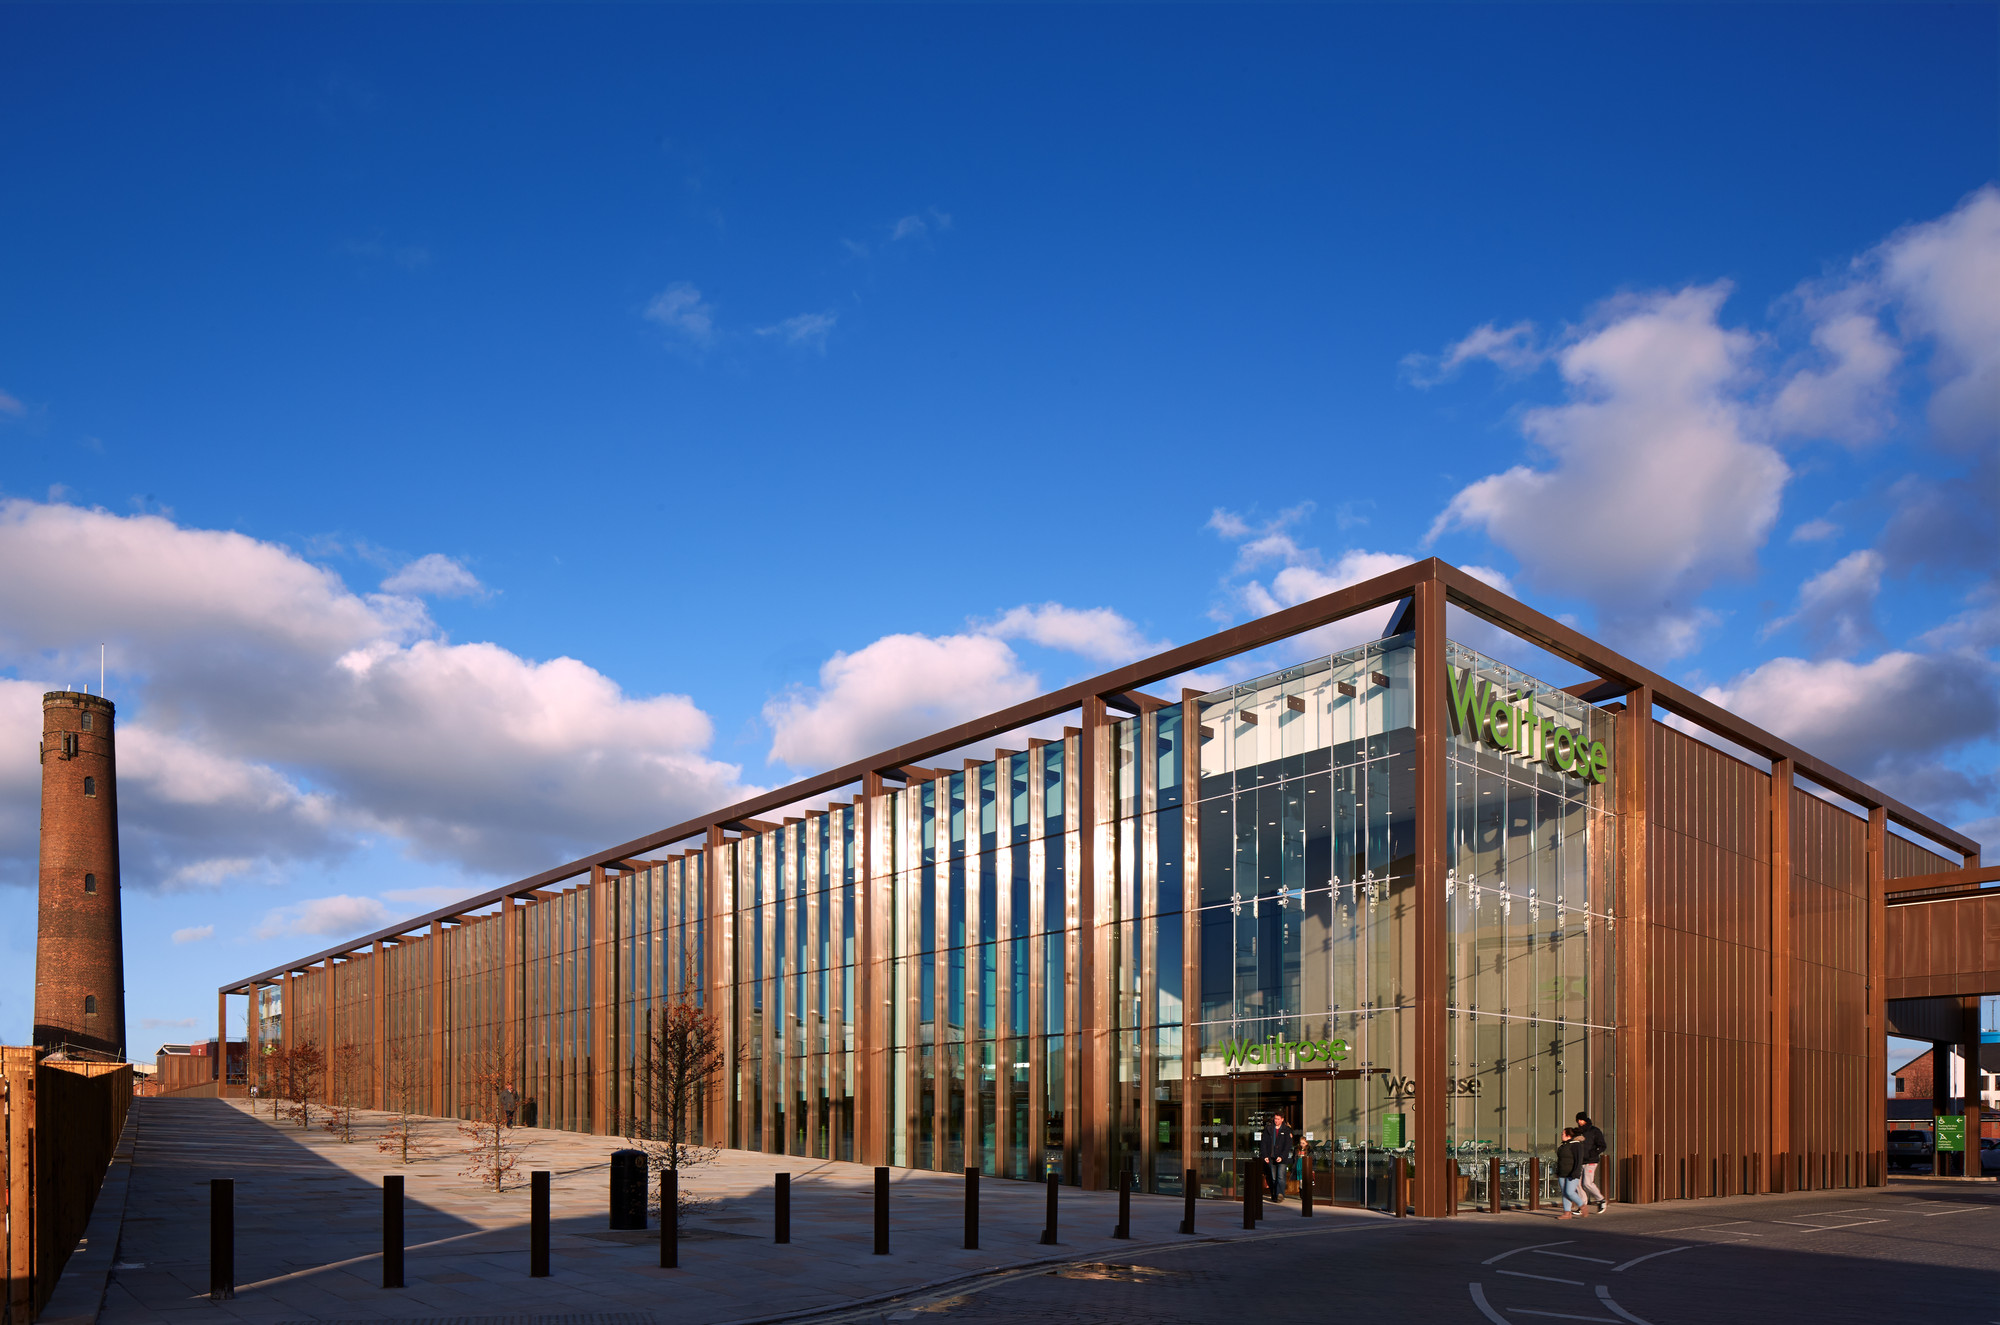 Waitrose chester broadway malyan archdaily - Architecture of a building ...